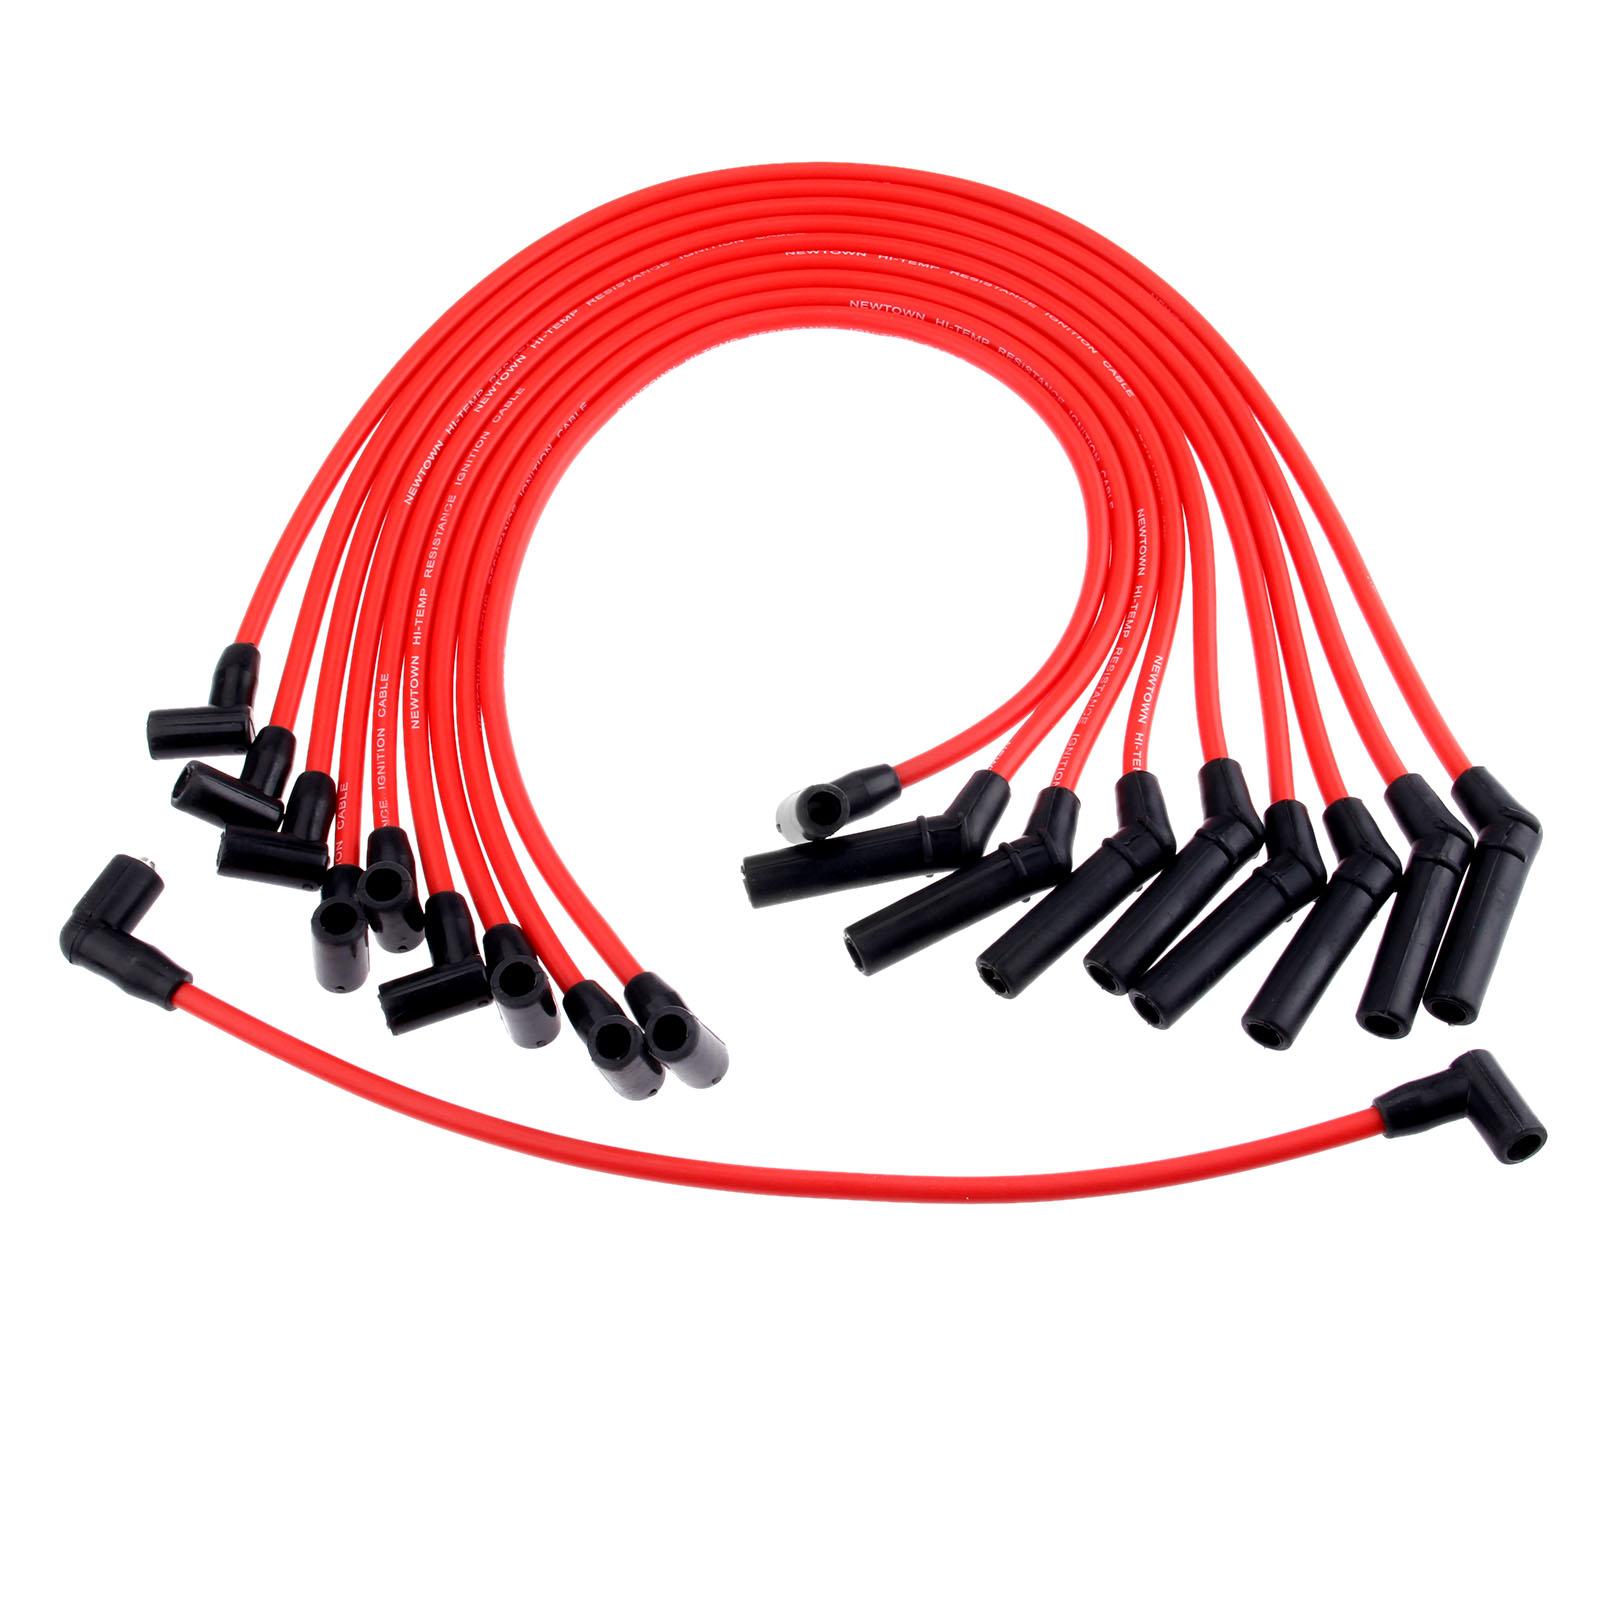 Yetaha 10Pcs 9mm Spark Plug Wires Ignition Cable Set M-12259-R301 For Ford Mustang F-150 5.0L/5.8L V8 ONLY